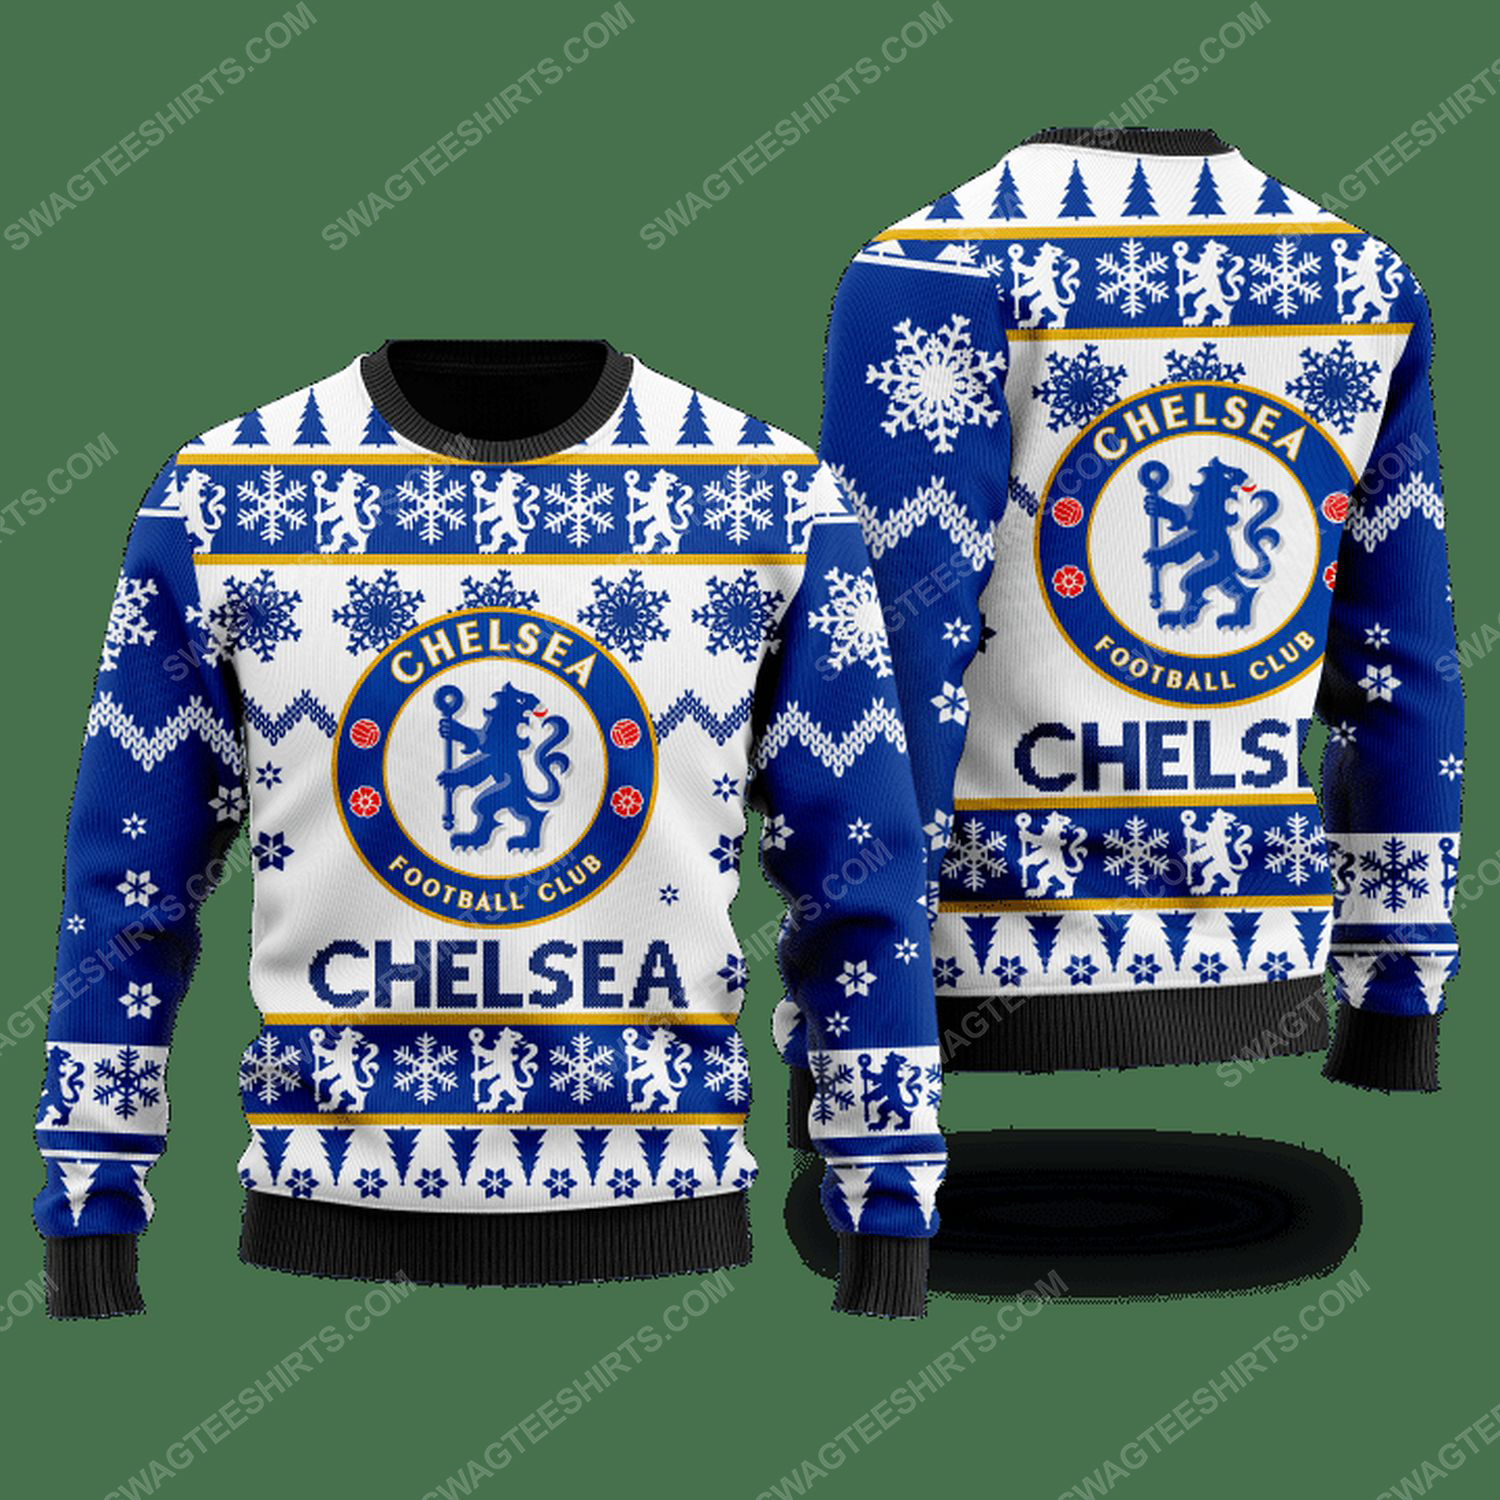 Chelsea football club ugly christmas sweater